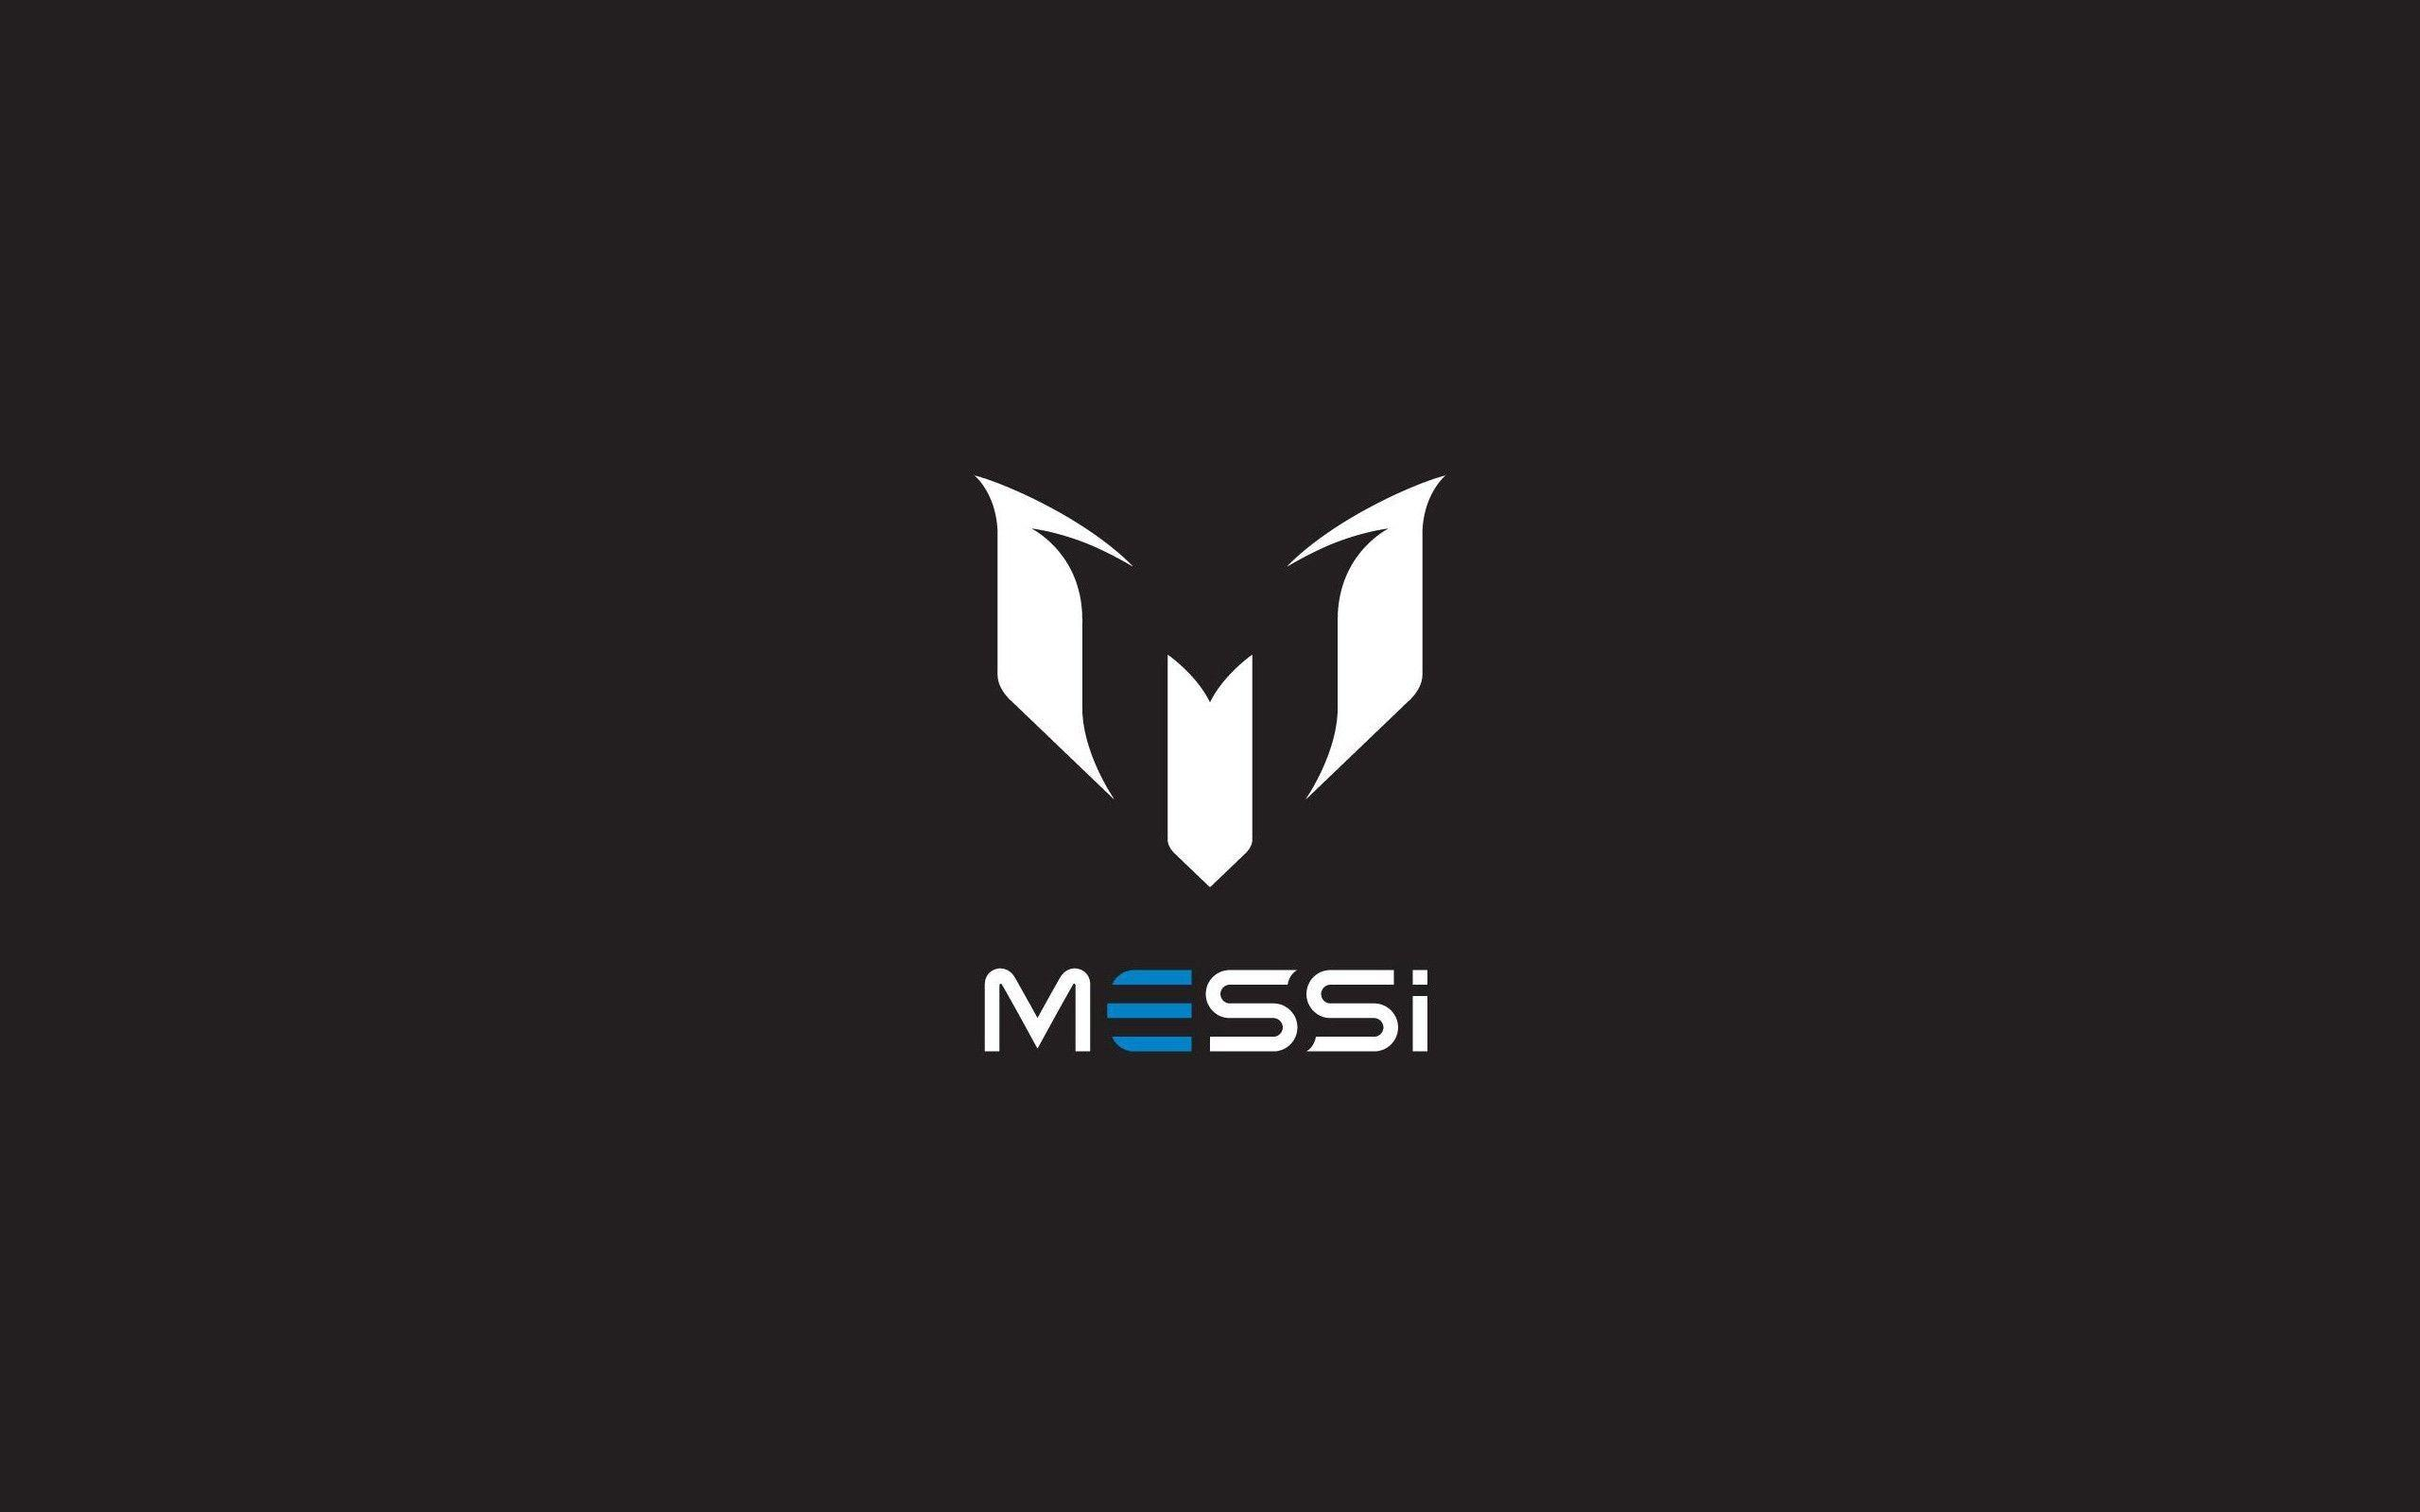 messi adidas logo wallpaper